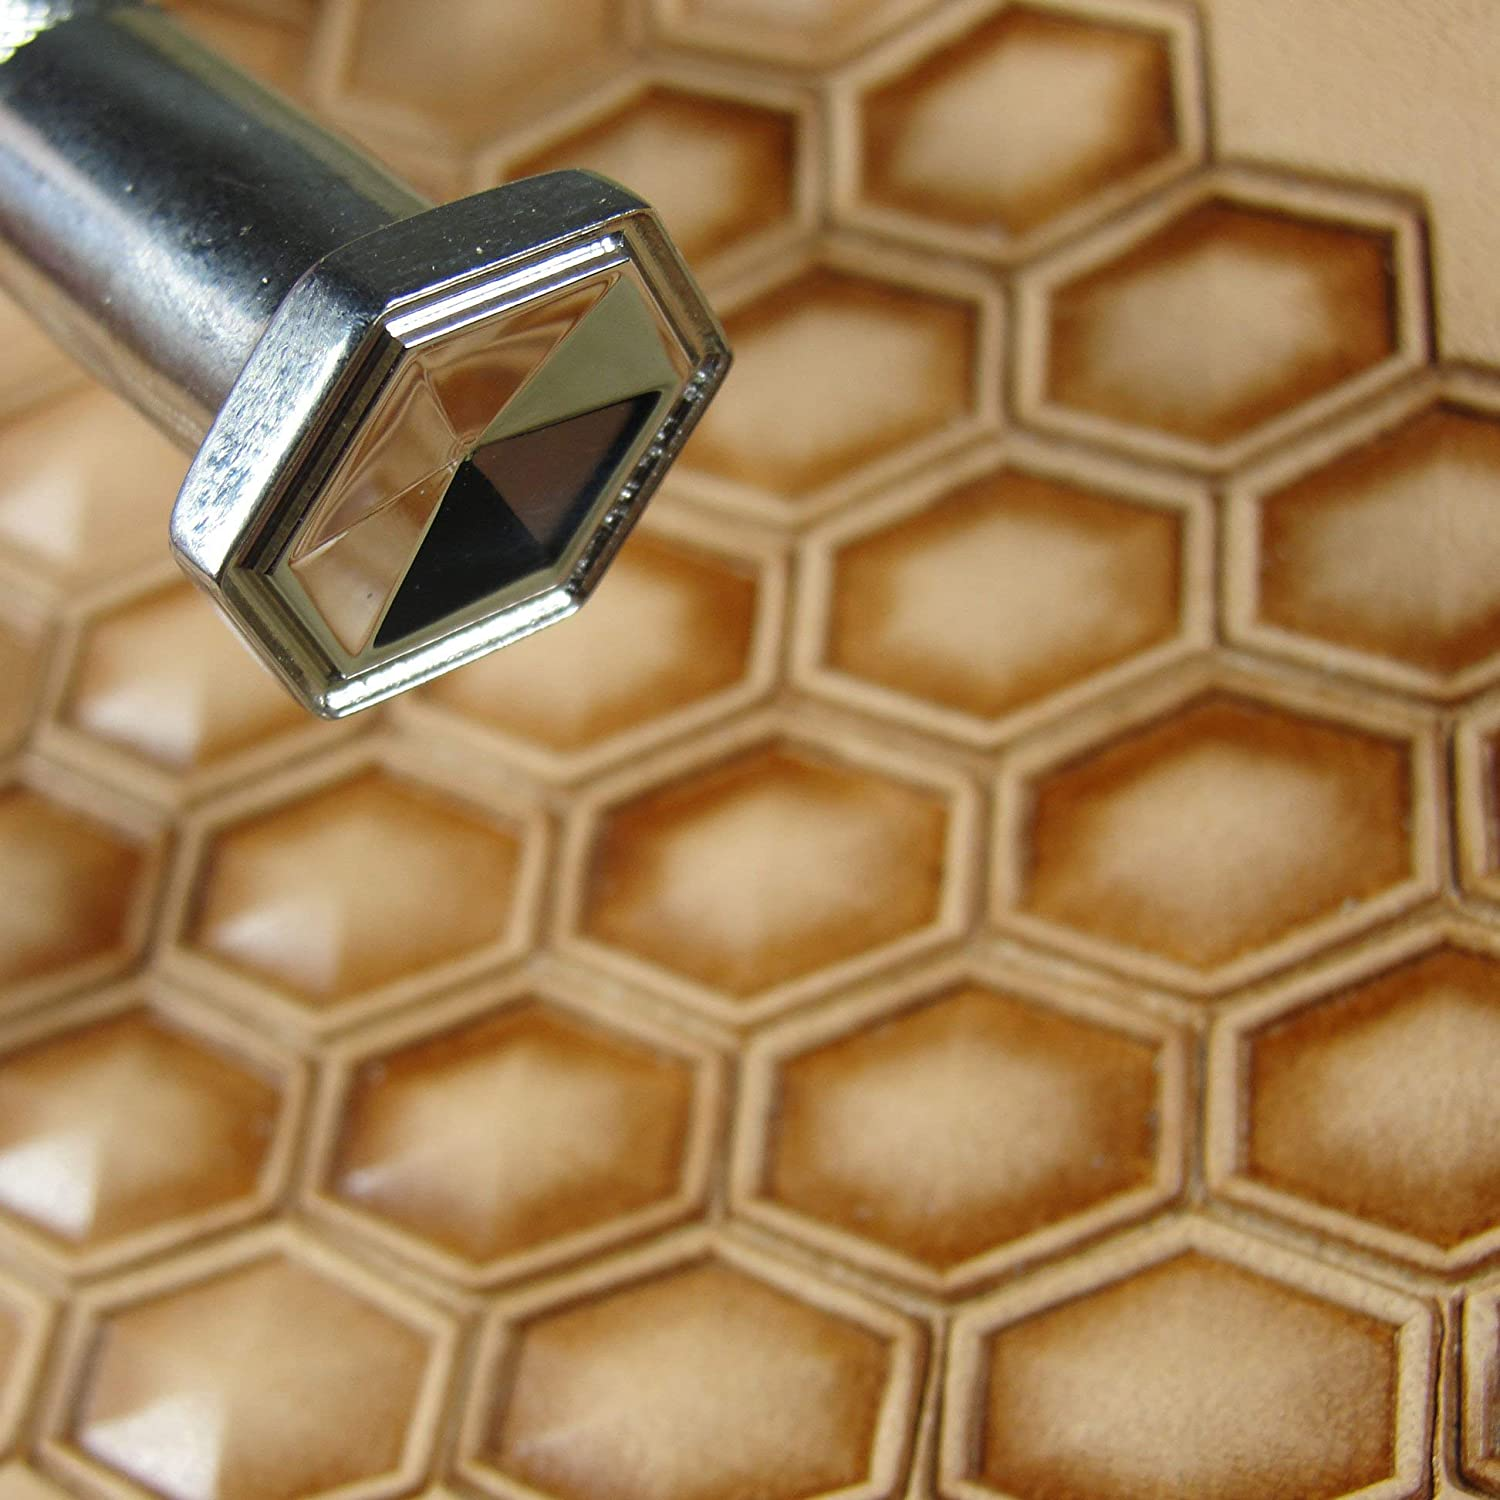 #3 Elongated Hollow Hex Geometric Stamp Stainless Steel Barry King Leather Tool